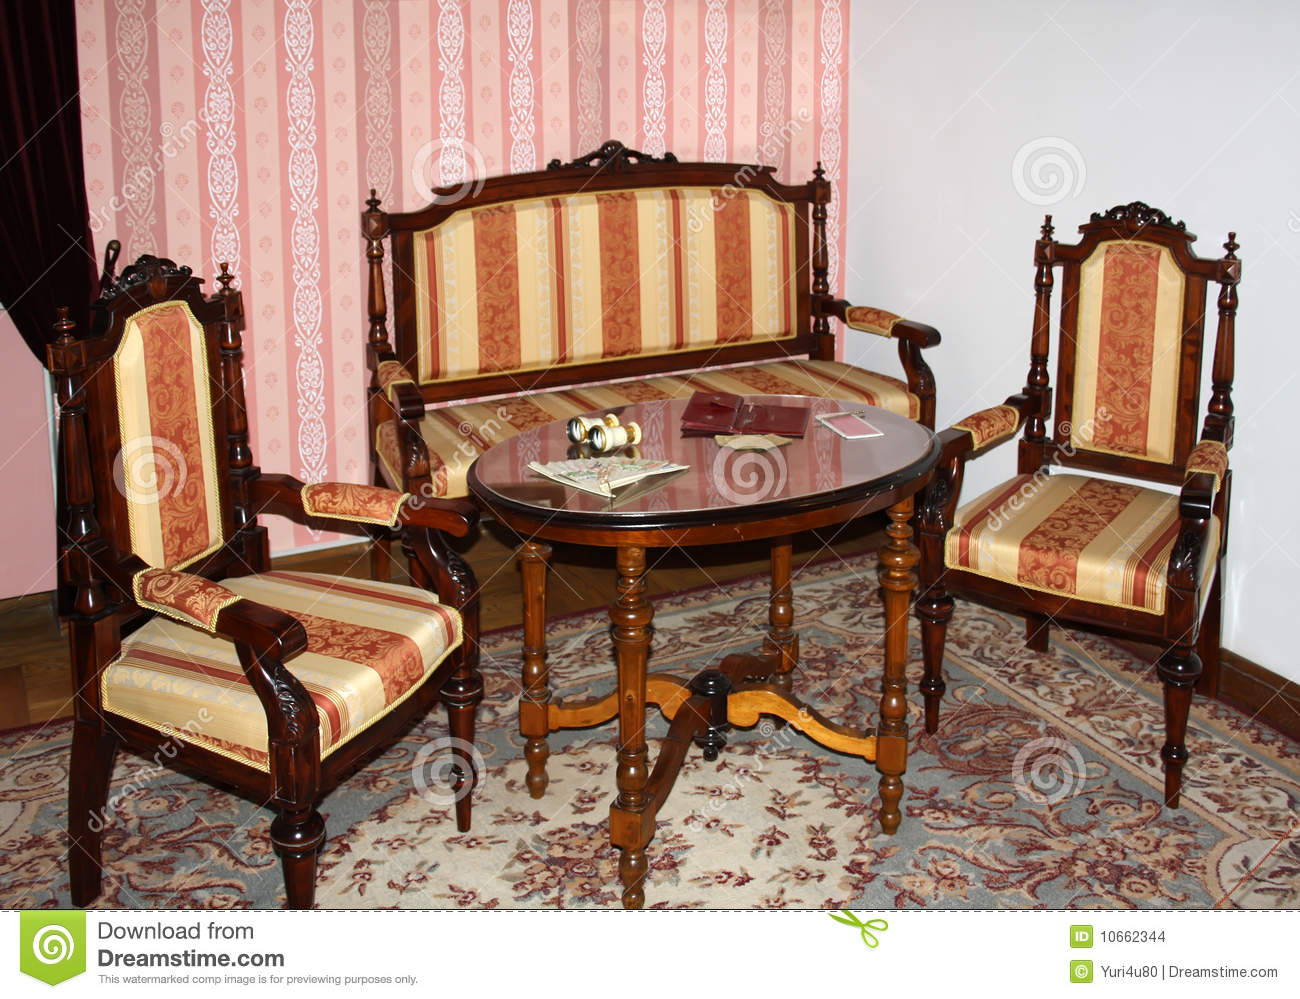 Old fashioned tables and chairs 69